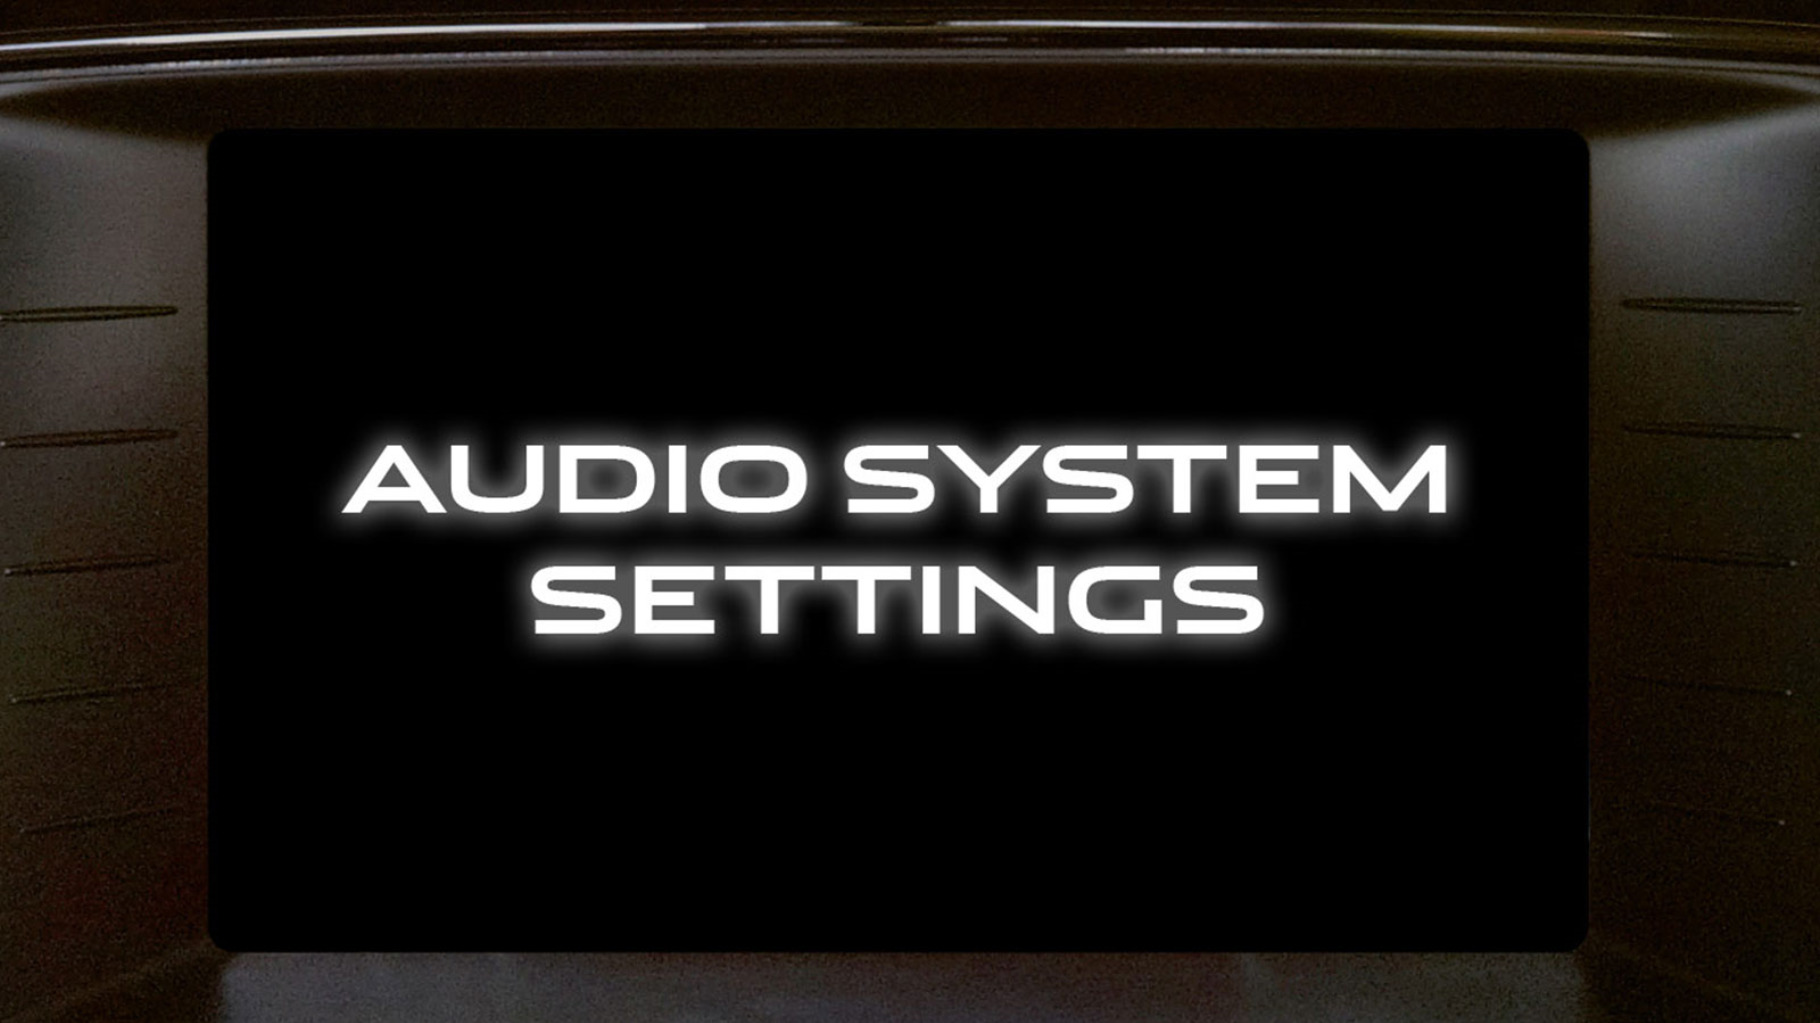 IMG_WRAPPER_gallery_Audio_System_Settings_Device-Desktop_1600x900.jpg